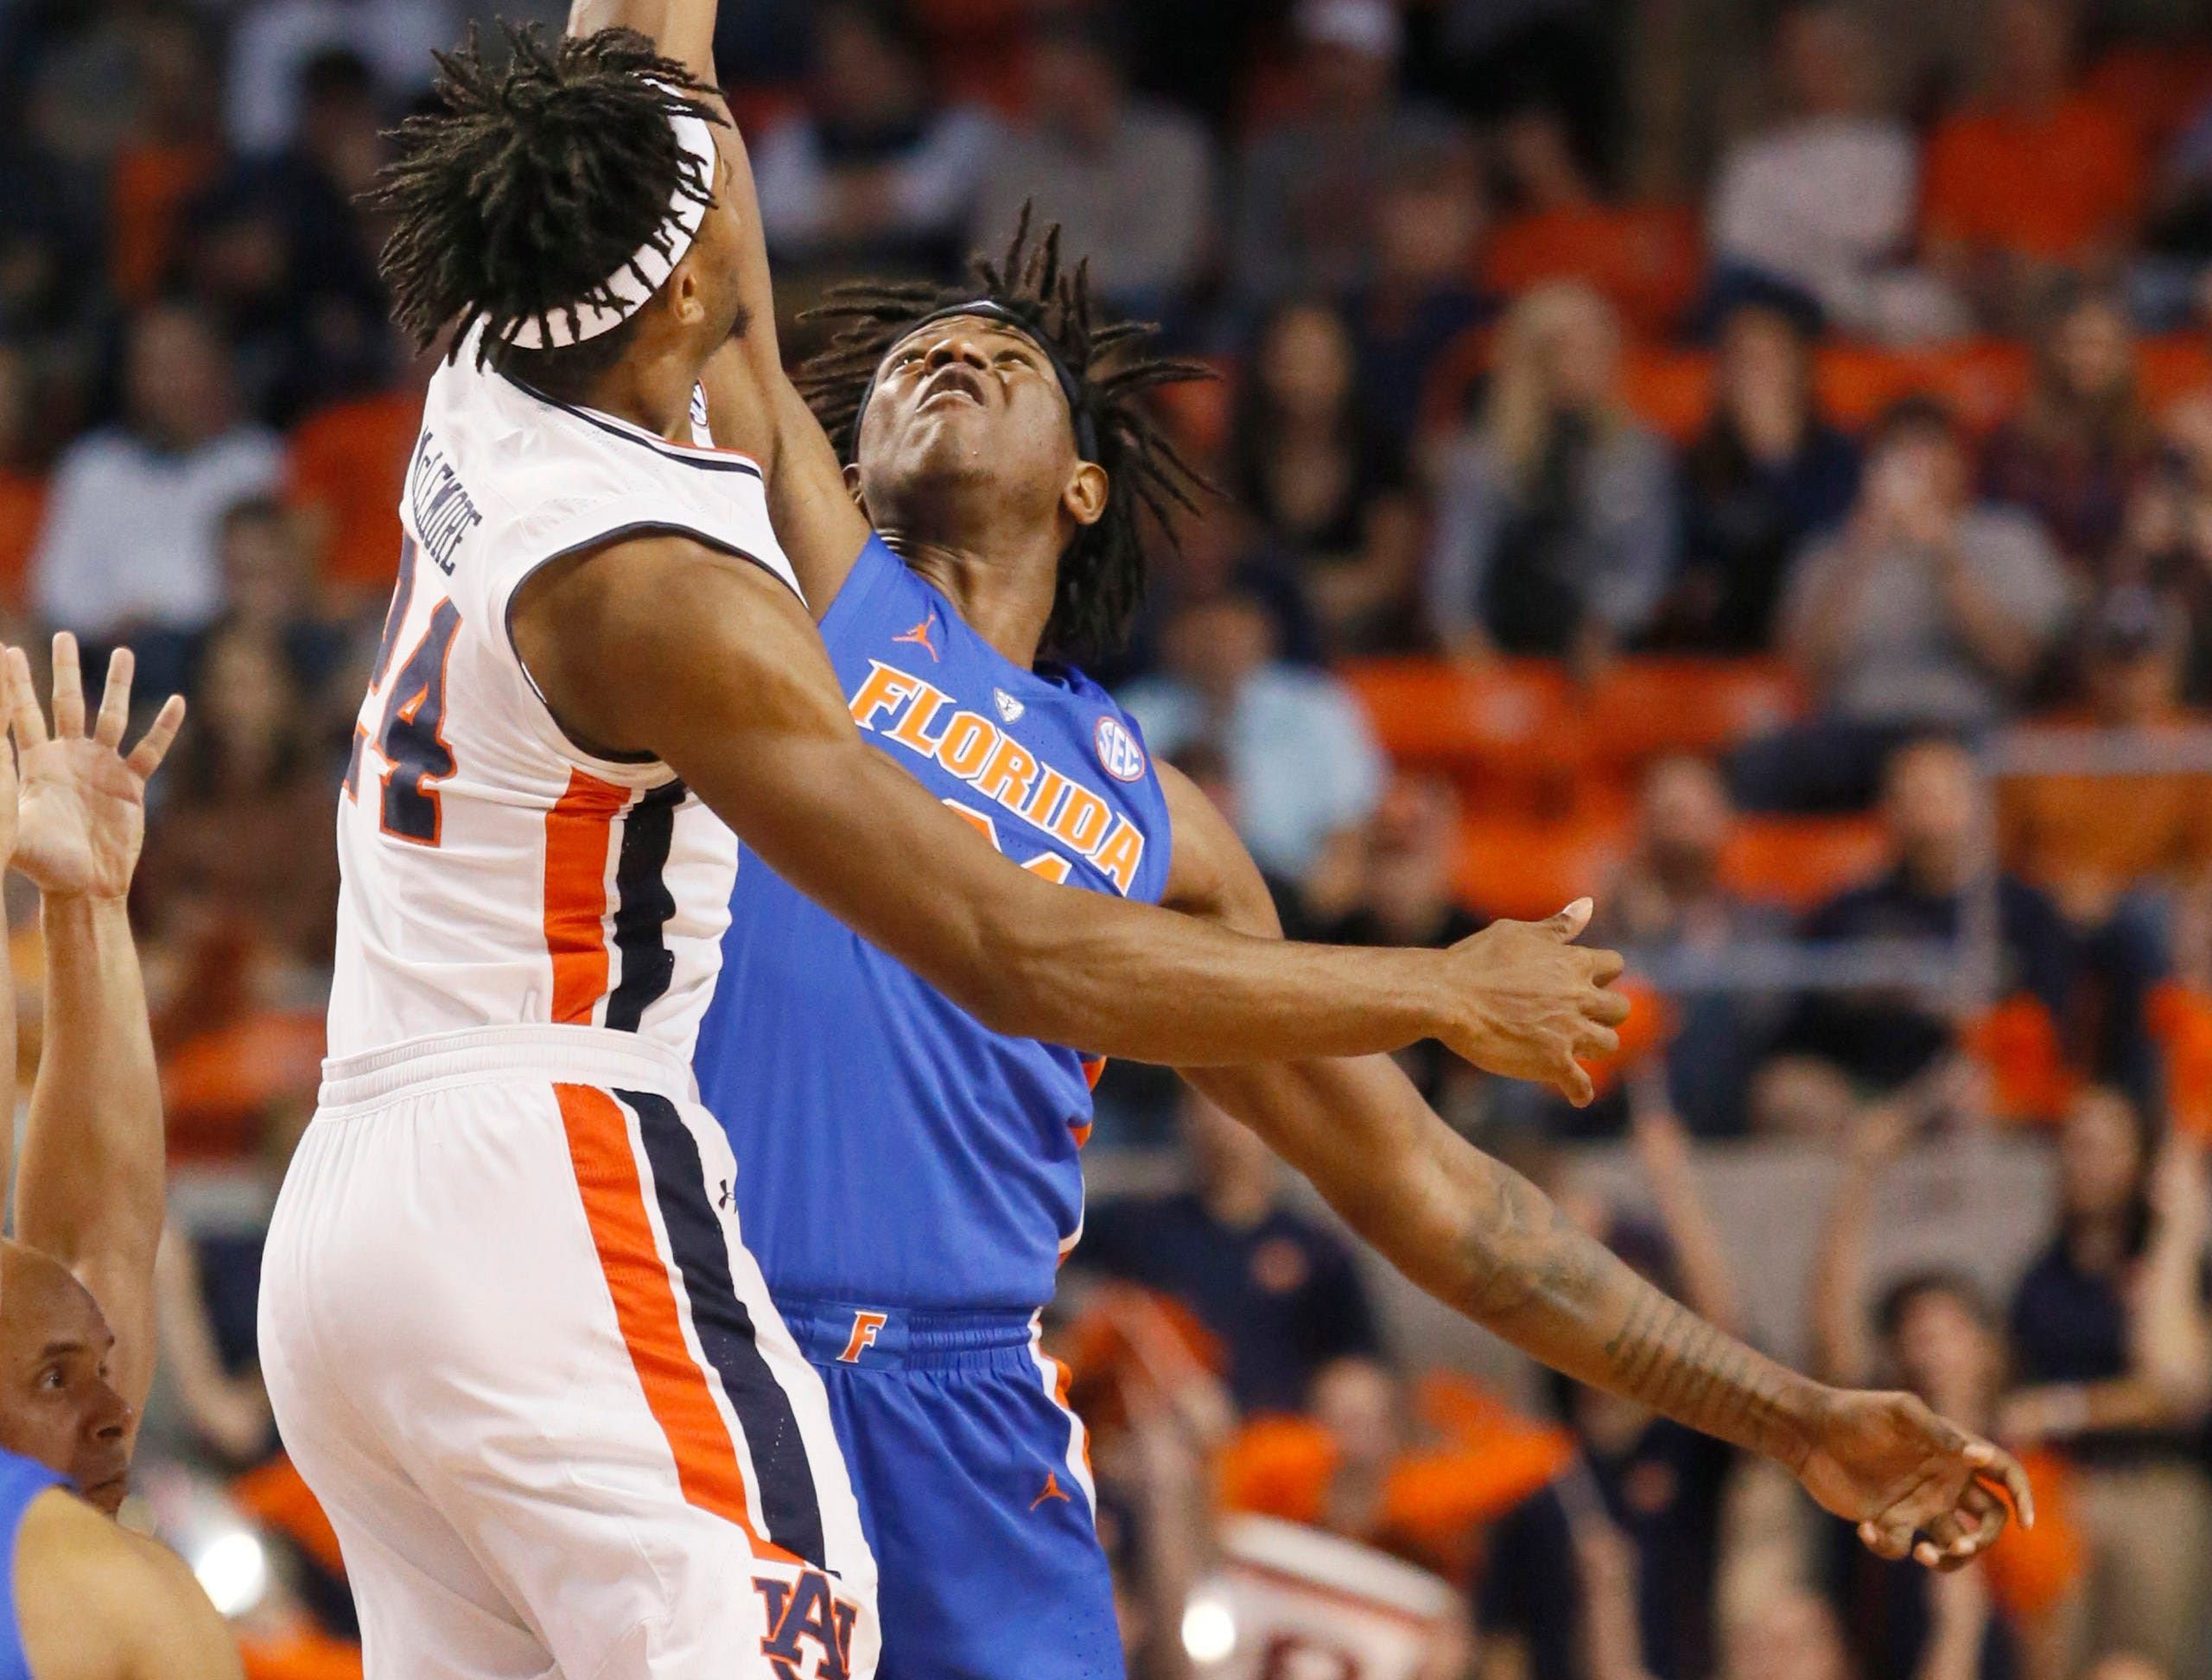 Feb 5, 2019; Auburn, AL, USA; Auburn Tigers forward Anfernee McLemore (24) battles with Florida Gators forward Dontay Bassett (21) for the opening tip during the first half at Auburn Arena. Mandatory Credit: John Reed-USA TODAY Sports